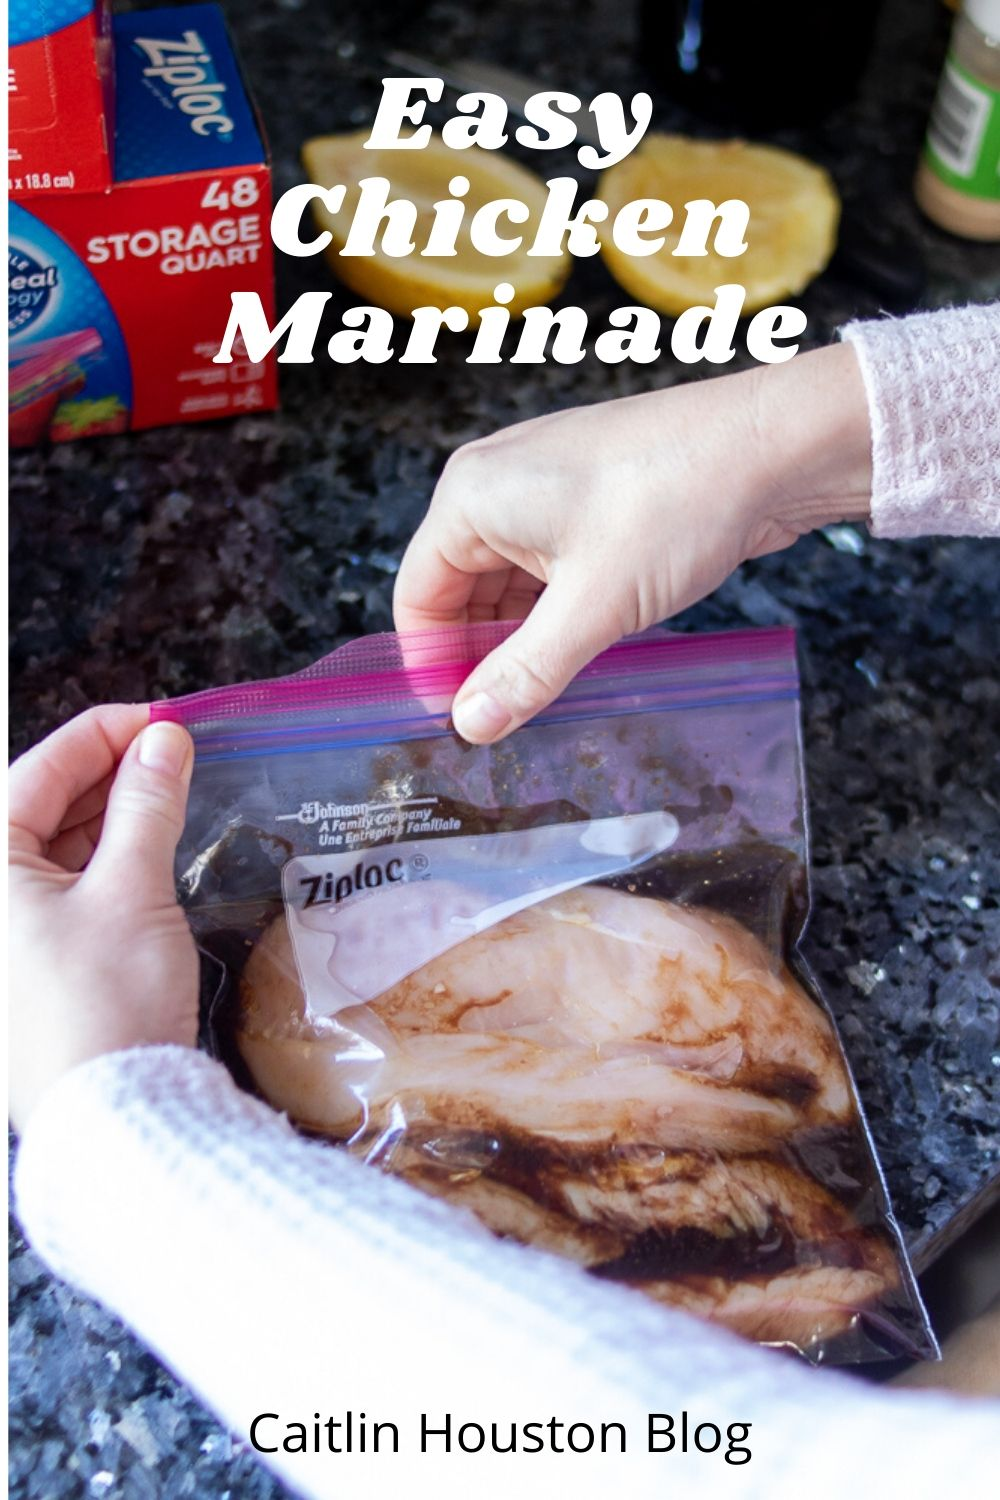 Chicken in a Marinade in a Ziploc Bag